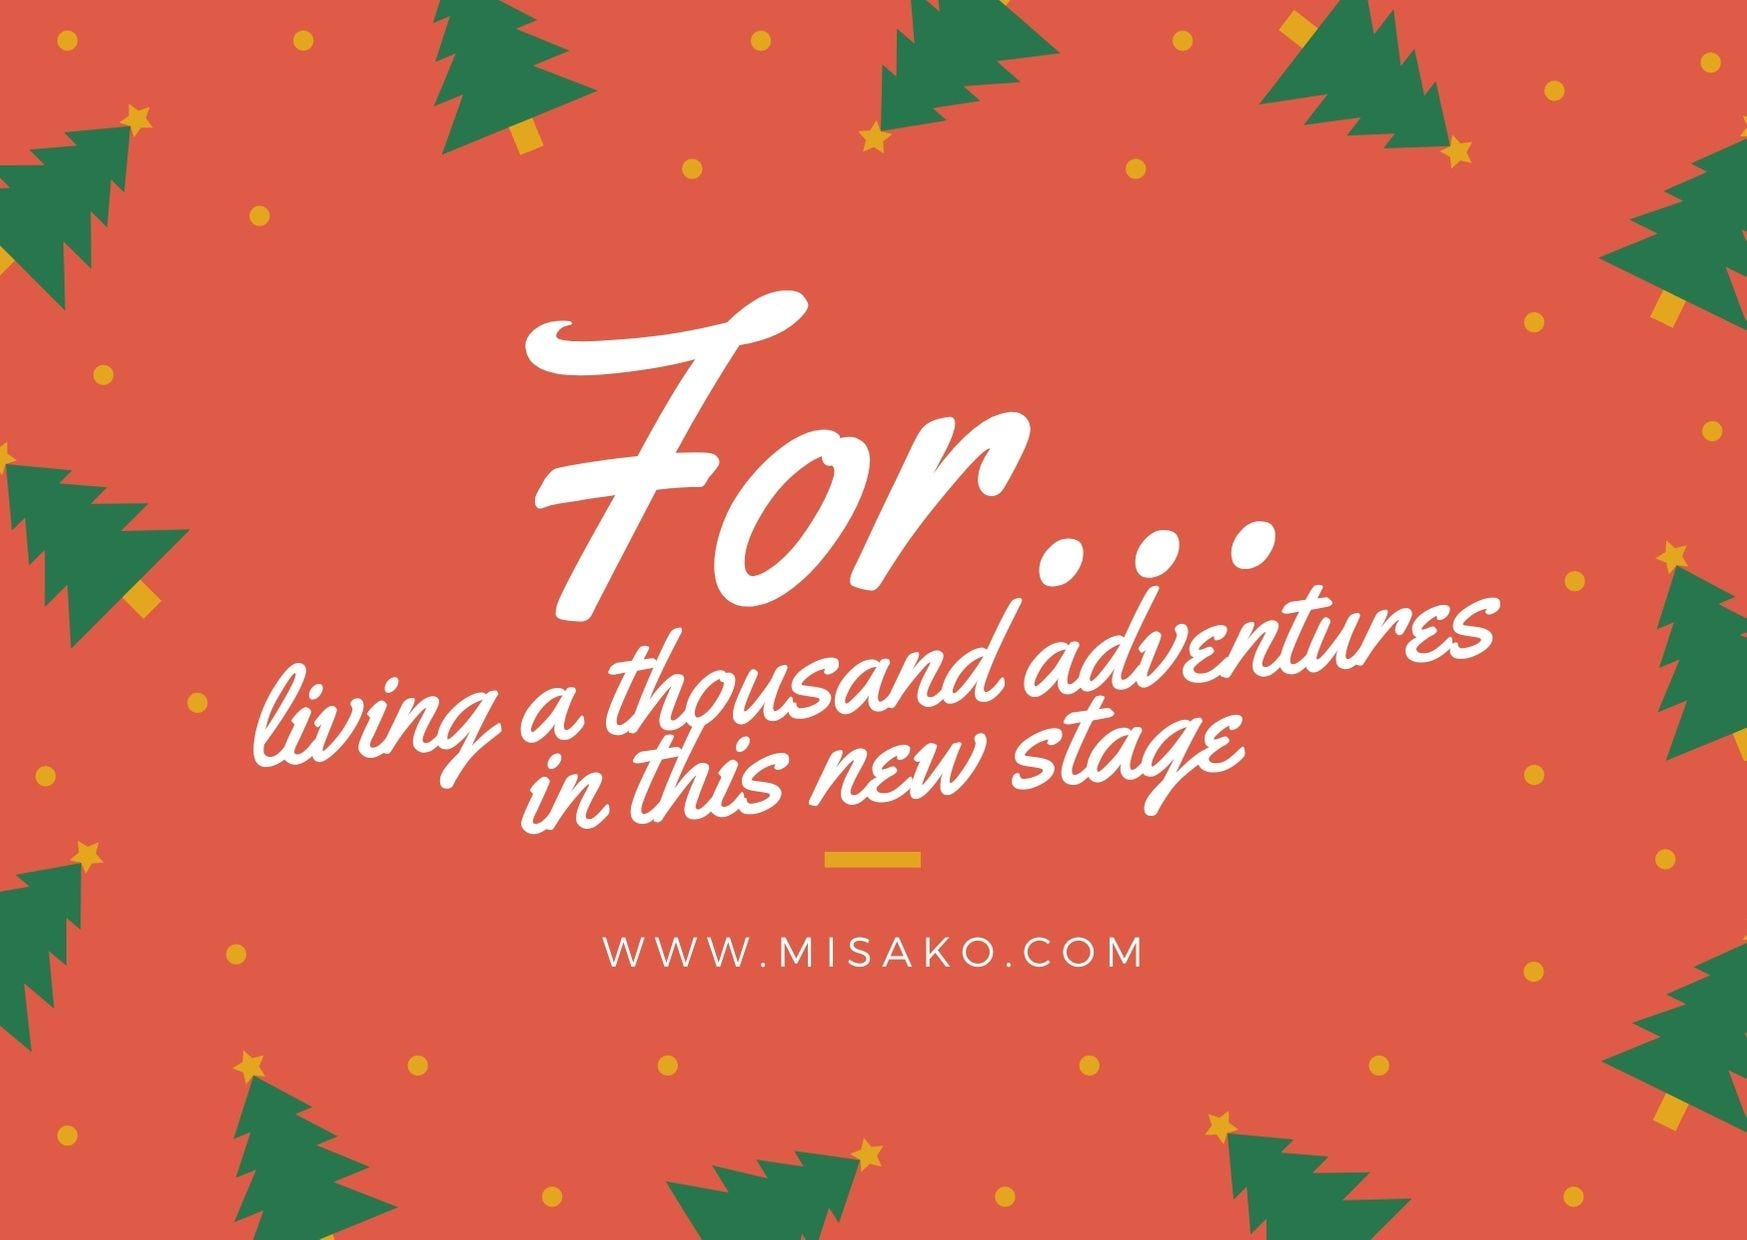 Card to print 3: For living a thousand adventures in this new stage